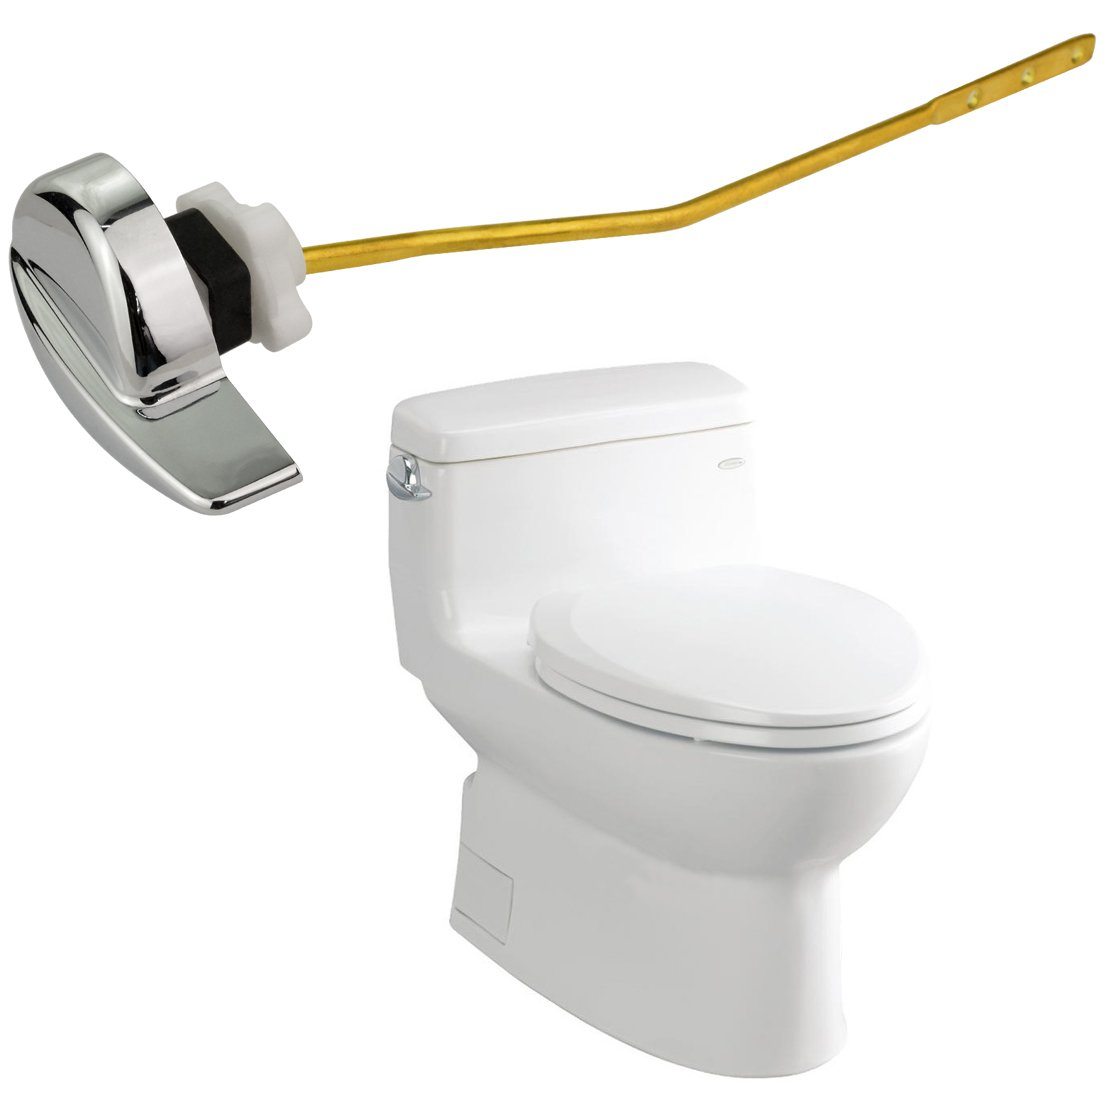 Cheap Toto Toilet Lever, find Toto Toilet Lever deals on line at ...